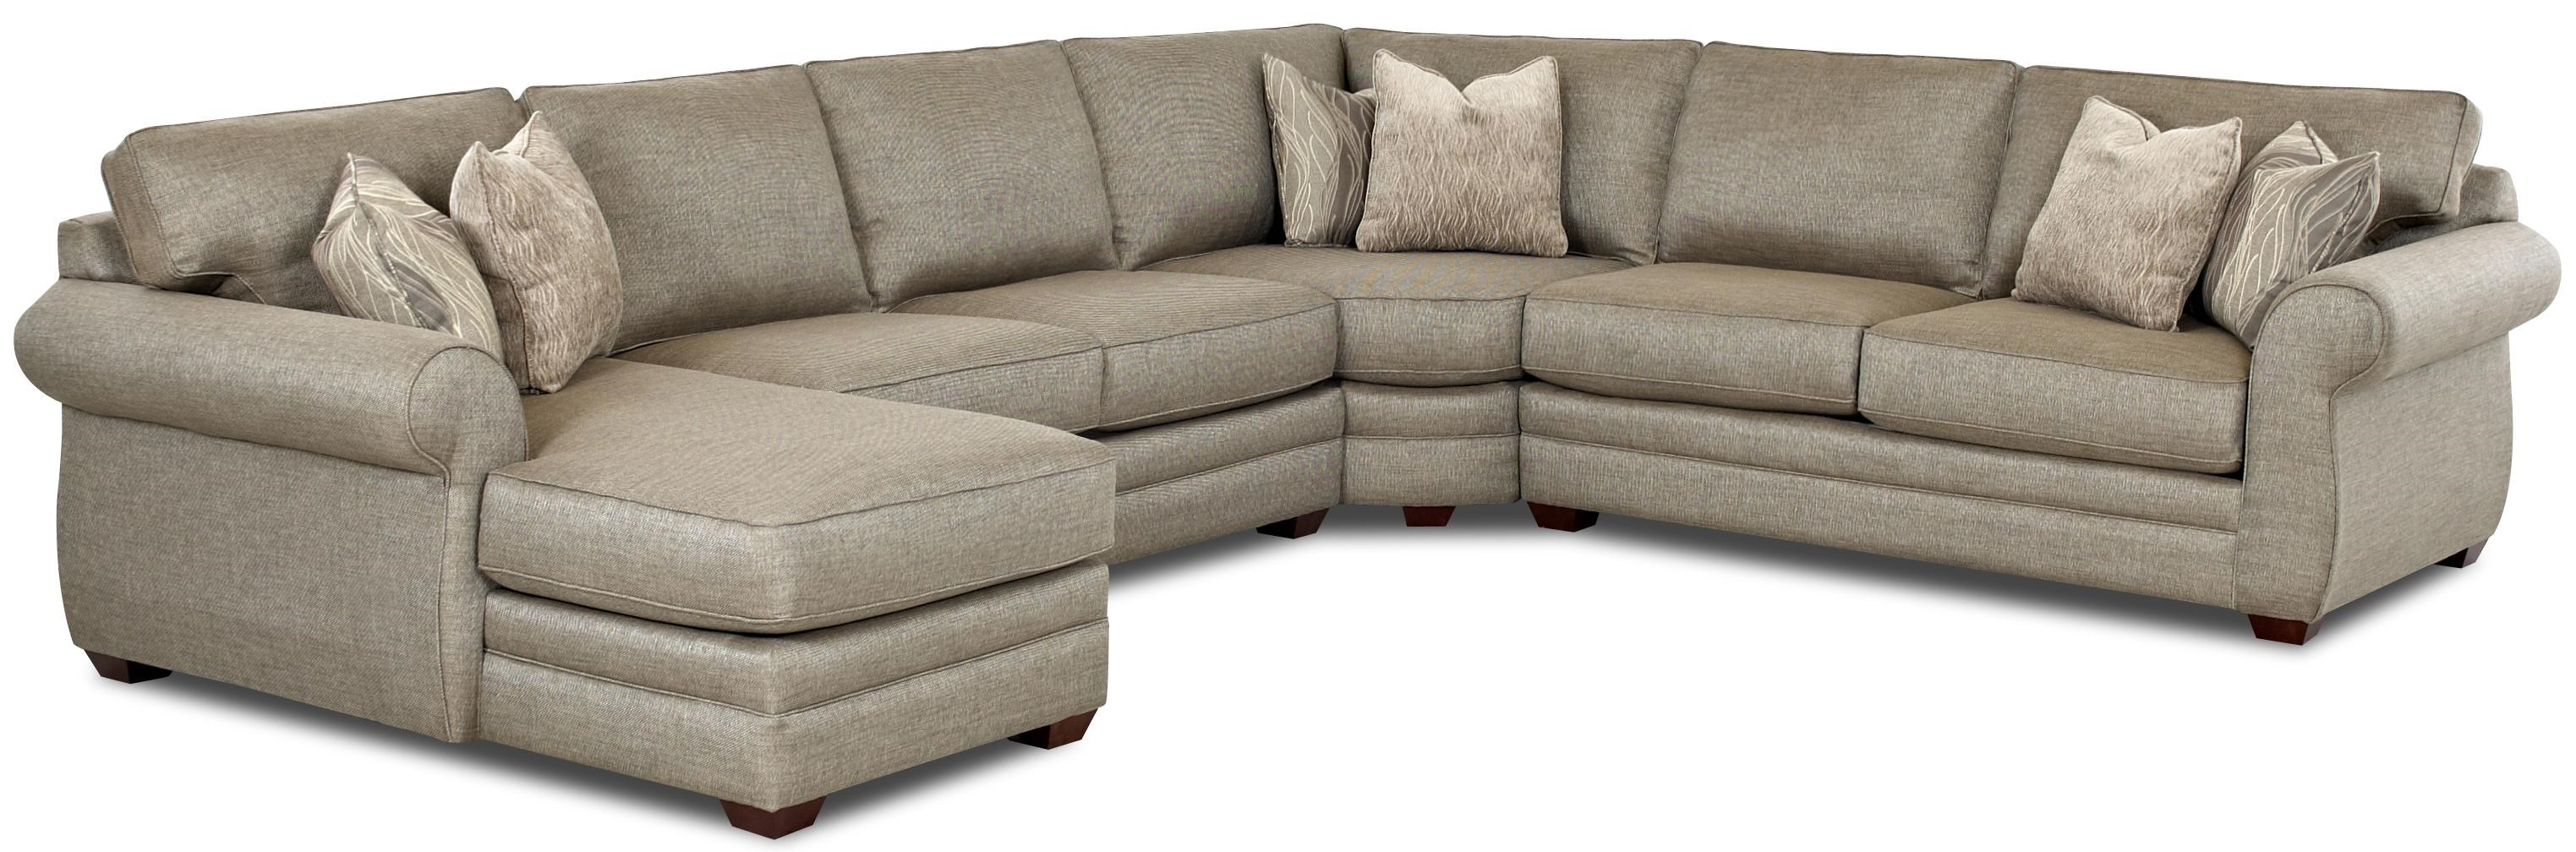 Klaussner Clanton Transitional Sectional Sofa with Left Chaise J